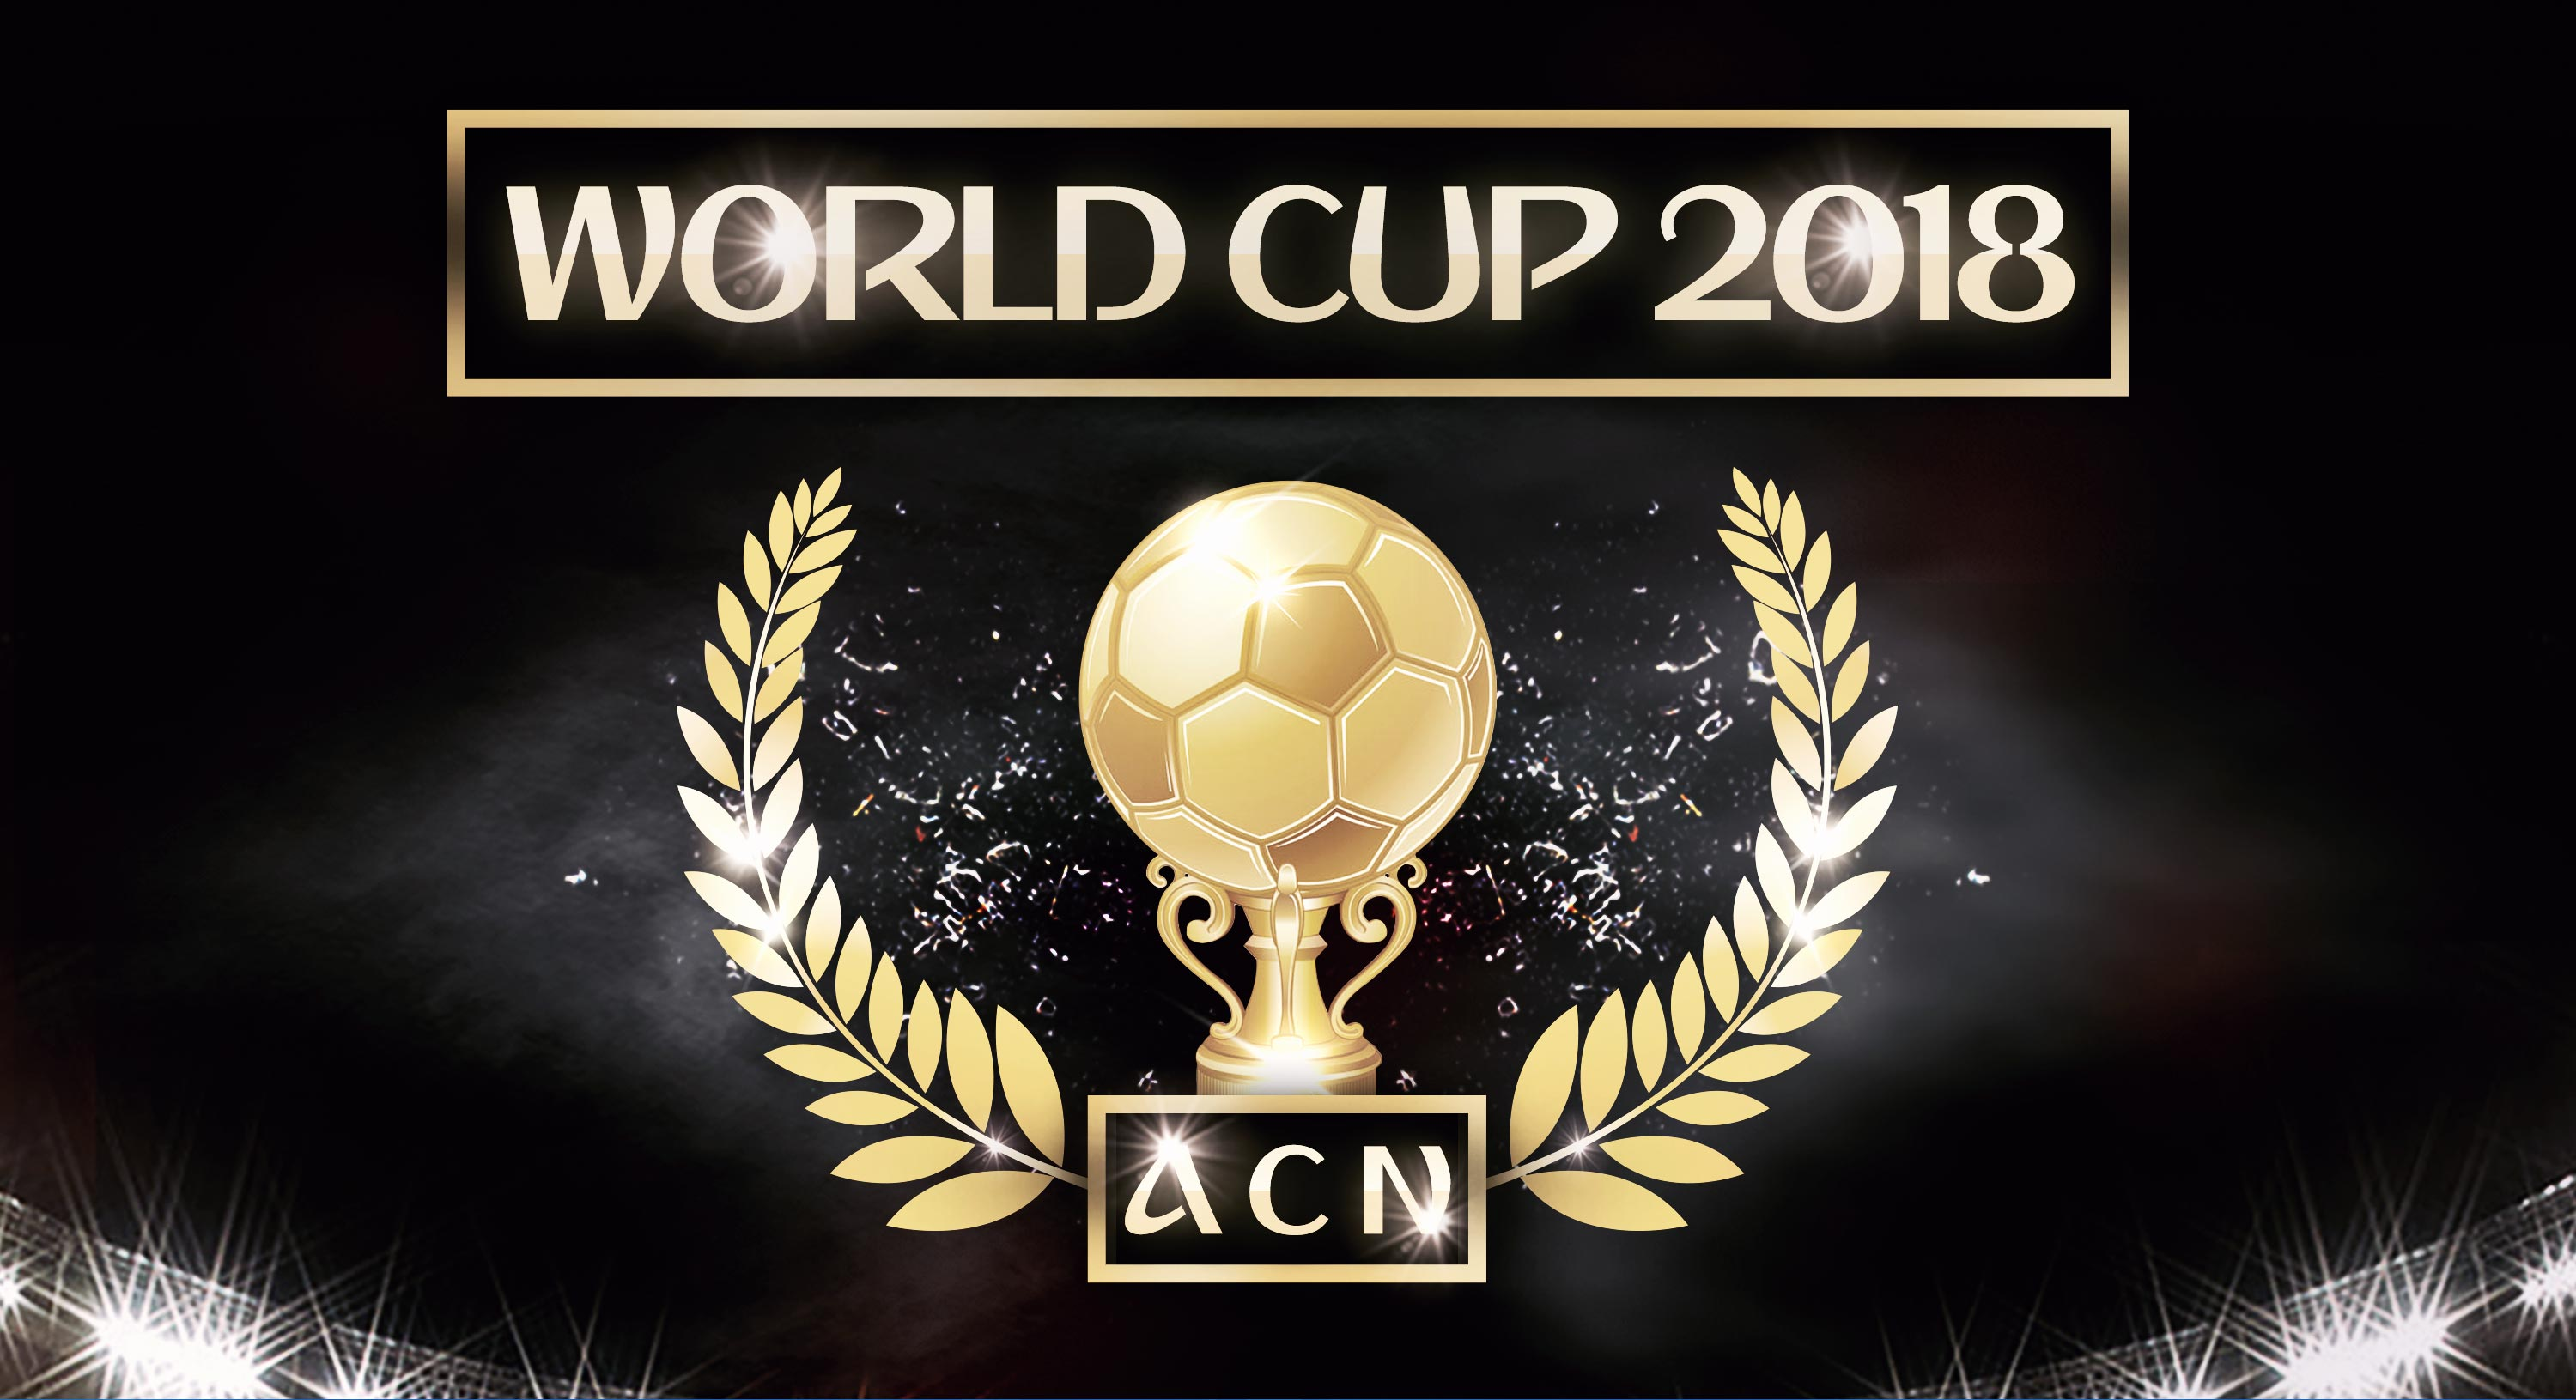 World Cup 2018 ACN